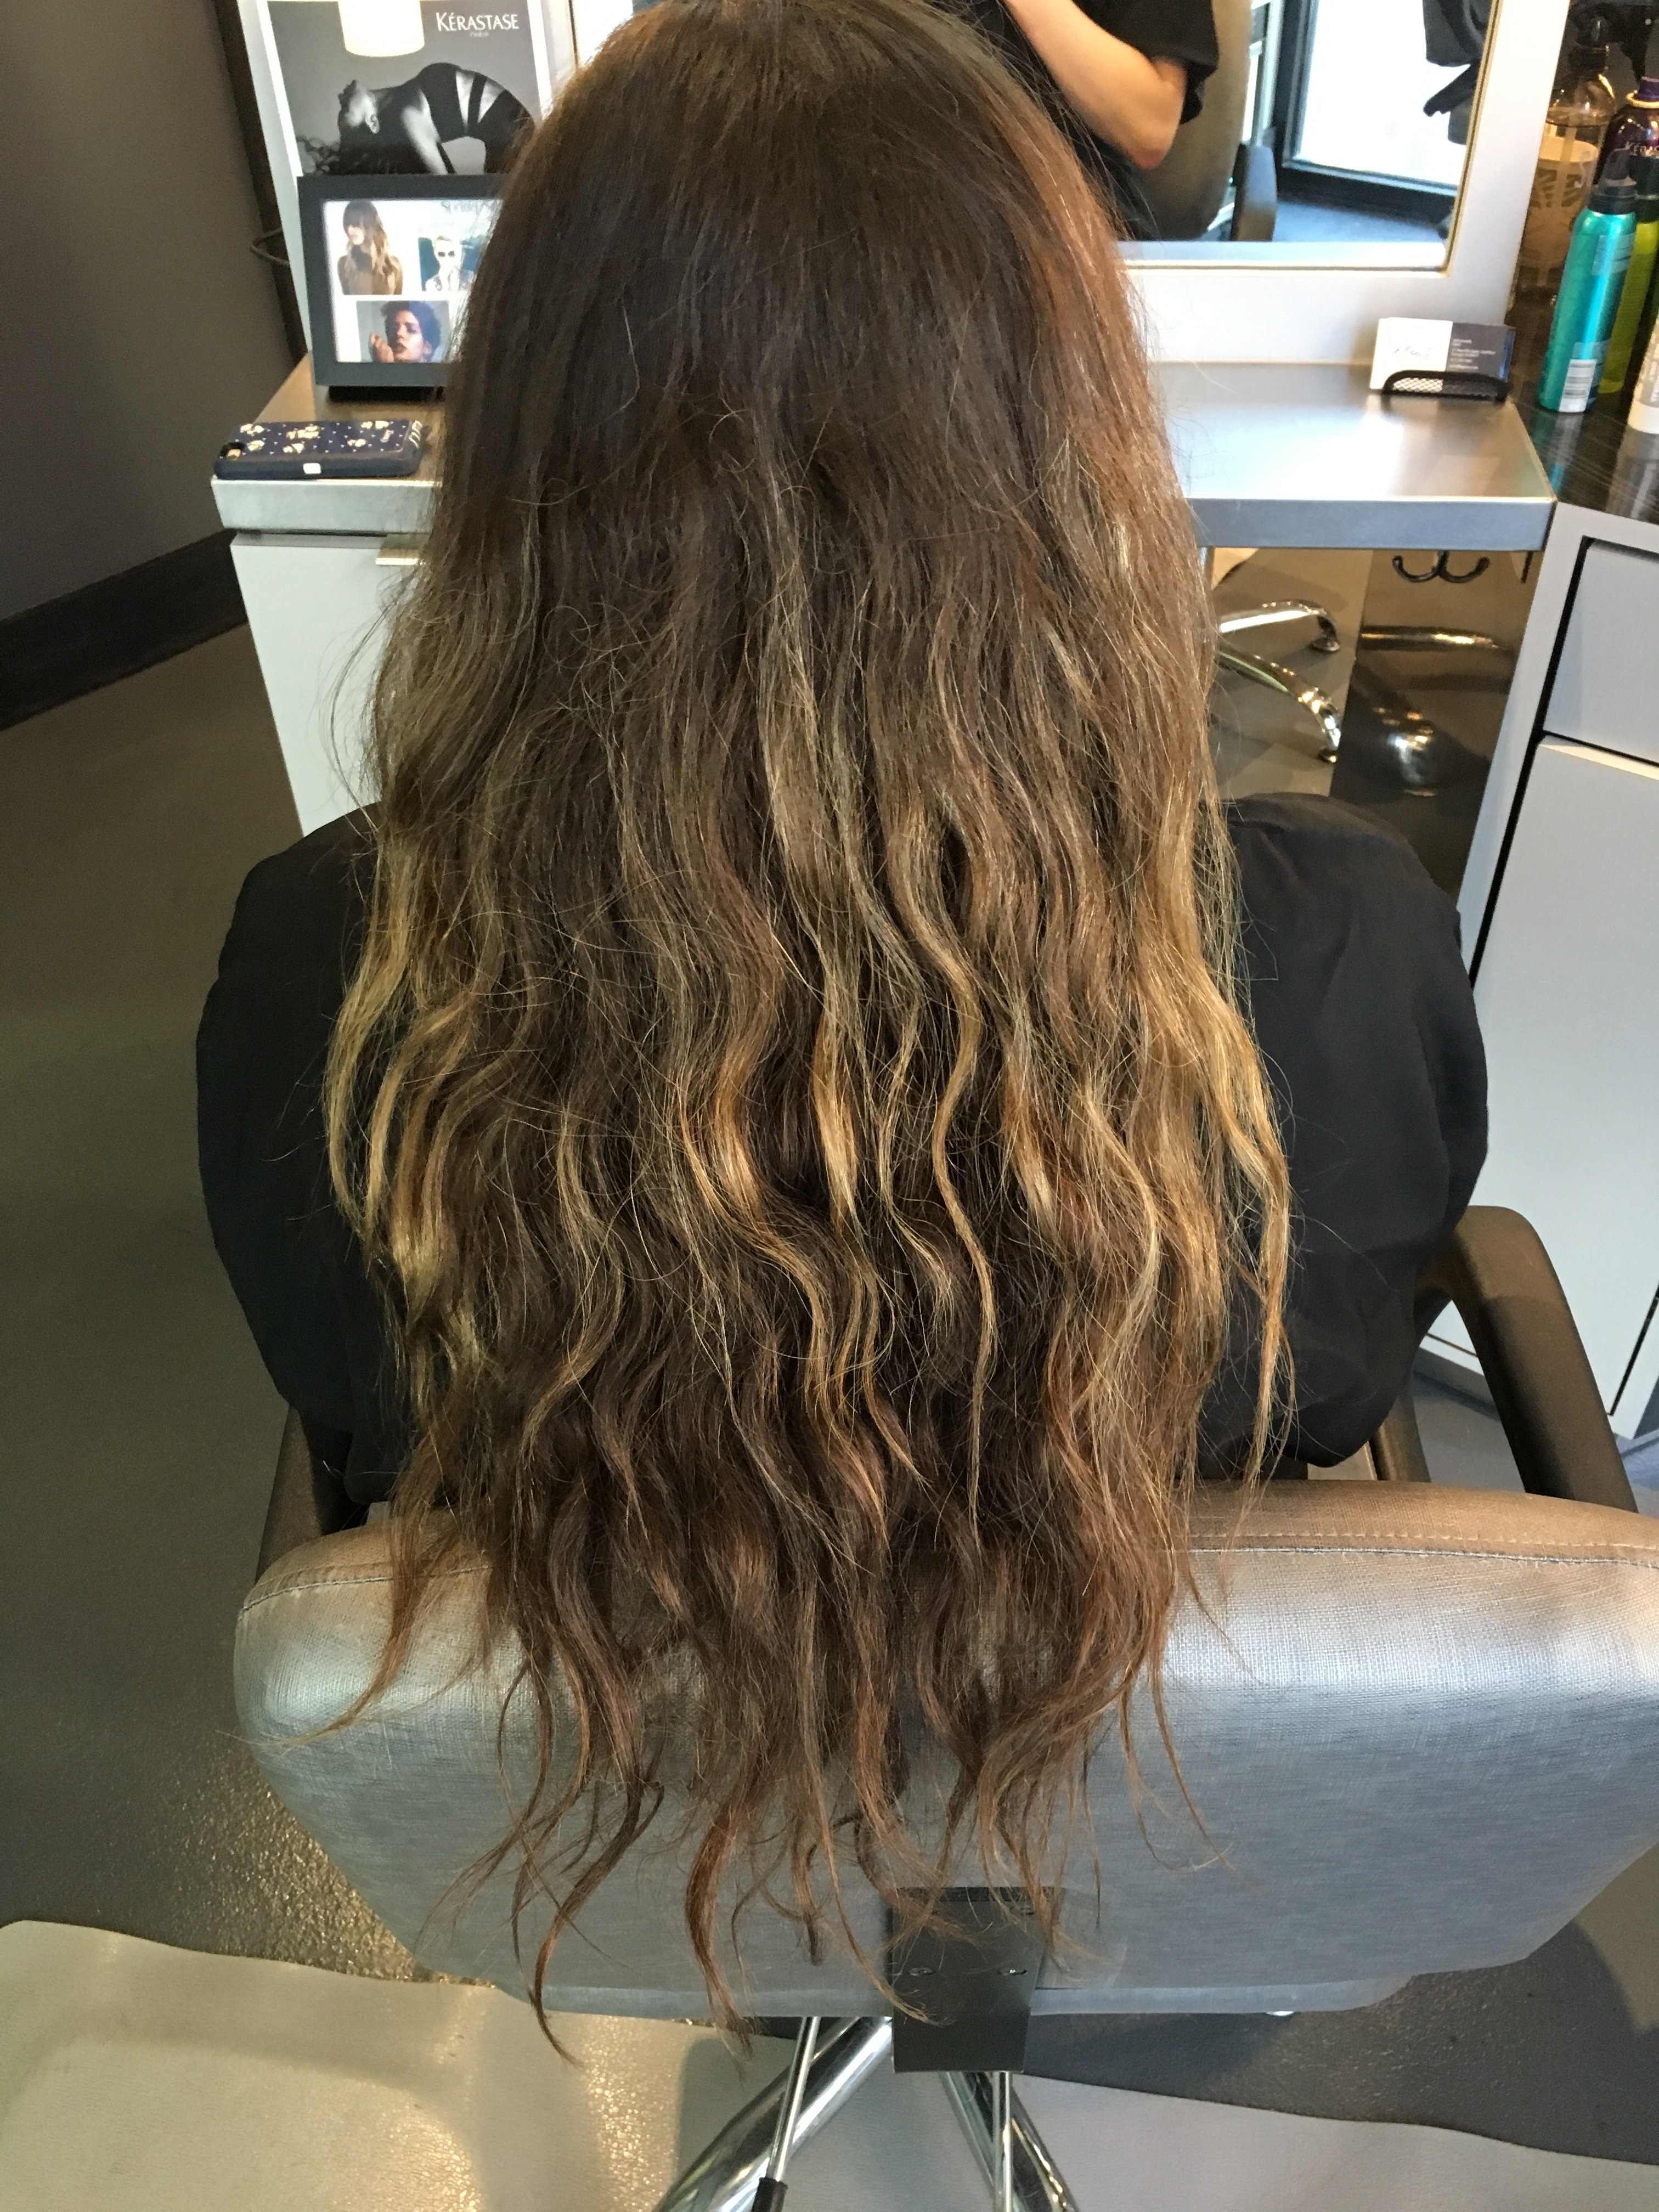 Best Hair Salon In Chicago Make An Appointmentbefore Big Haircut